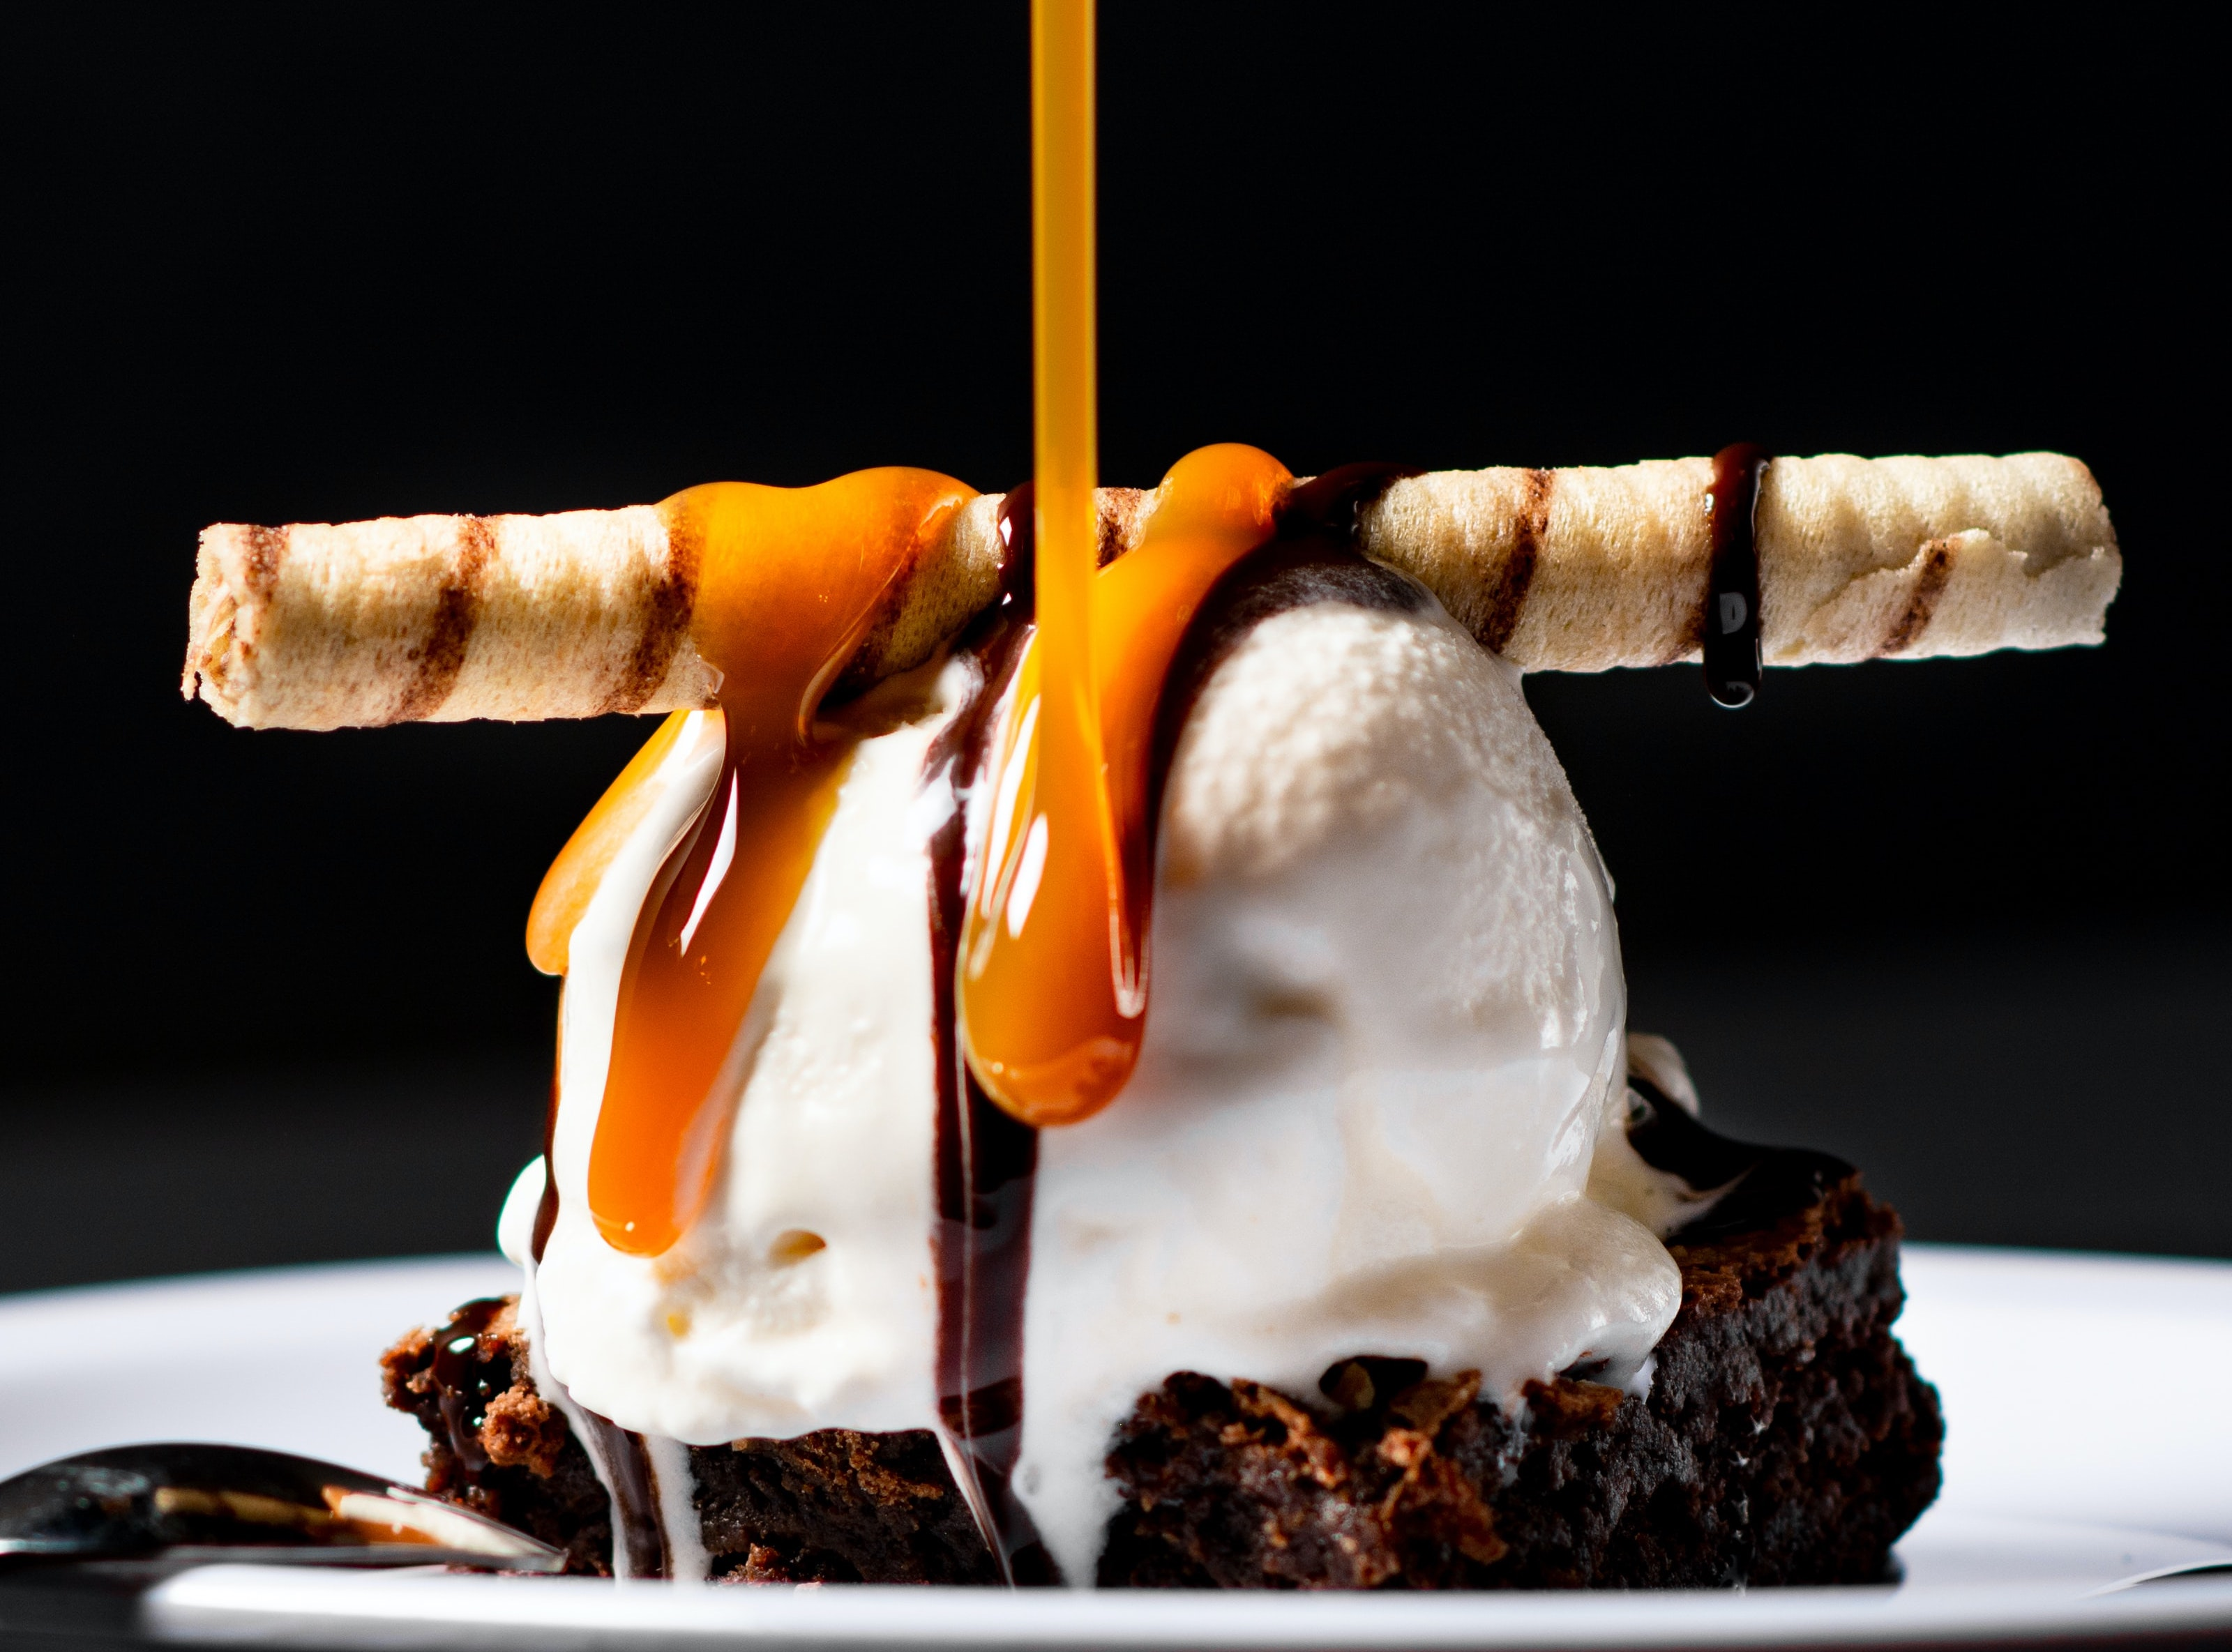 A chocolate brownie with ice cream and a wafer cigar